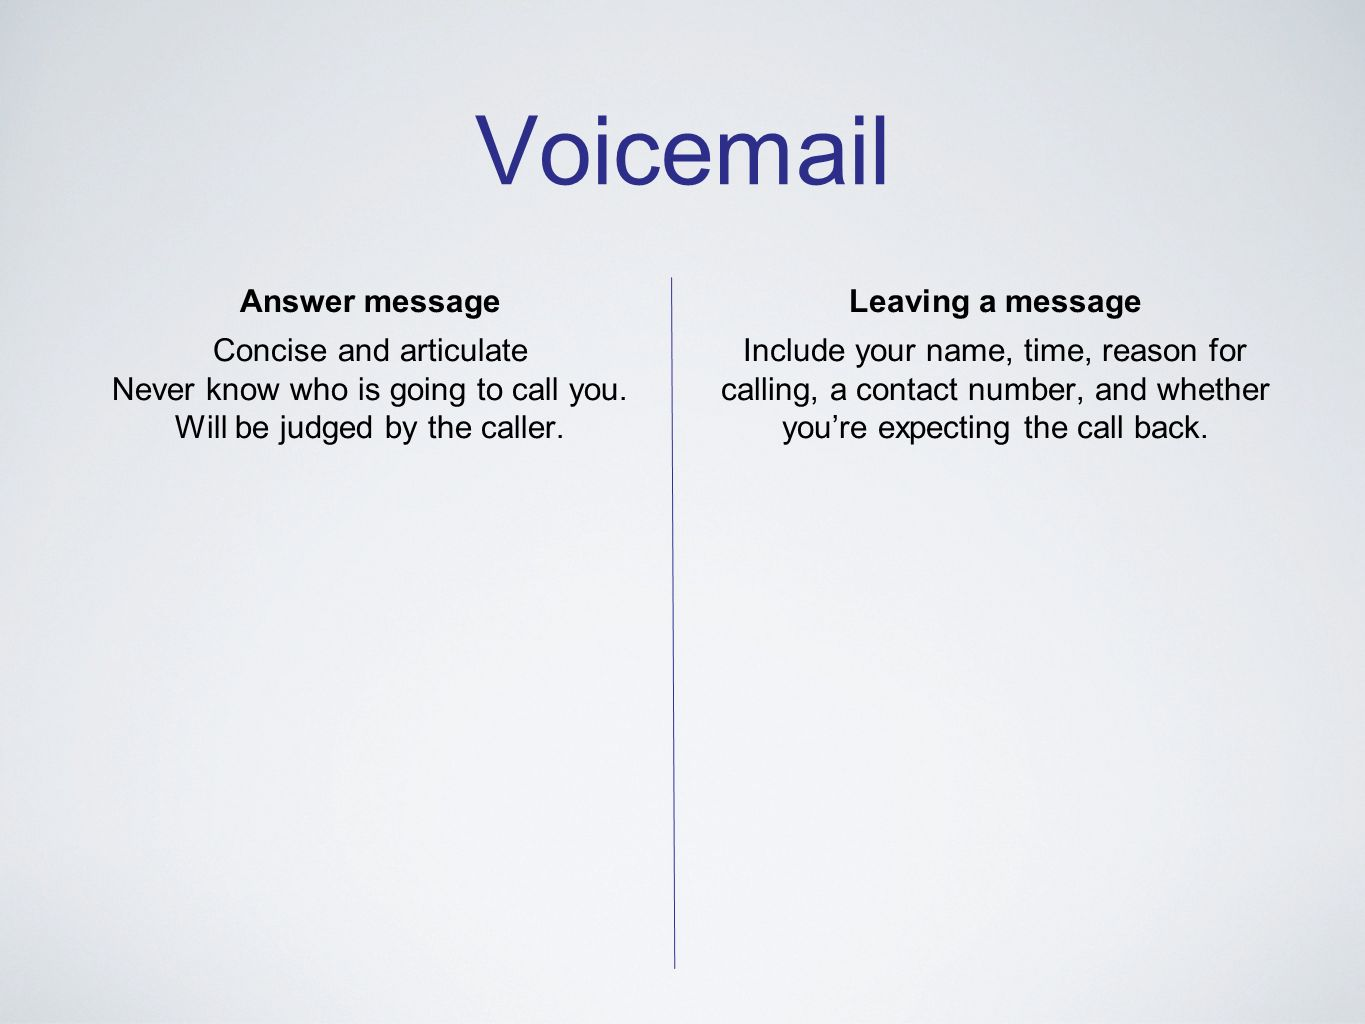 Voicemail Answer message Concise and articulate Never know who is going to call you. Will be judged by the caller. Leaving a message Include your name